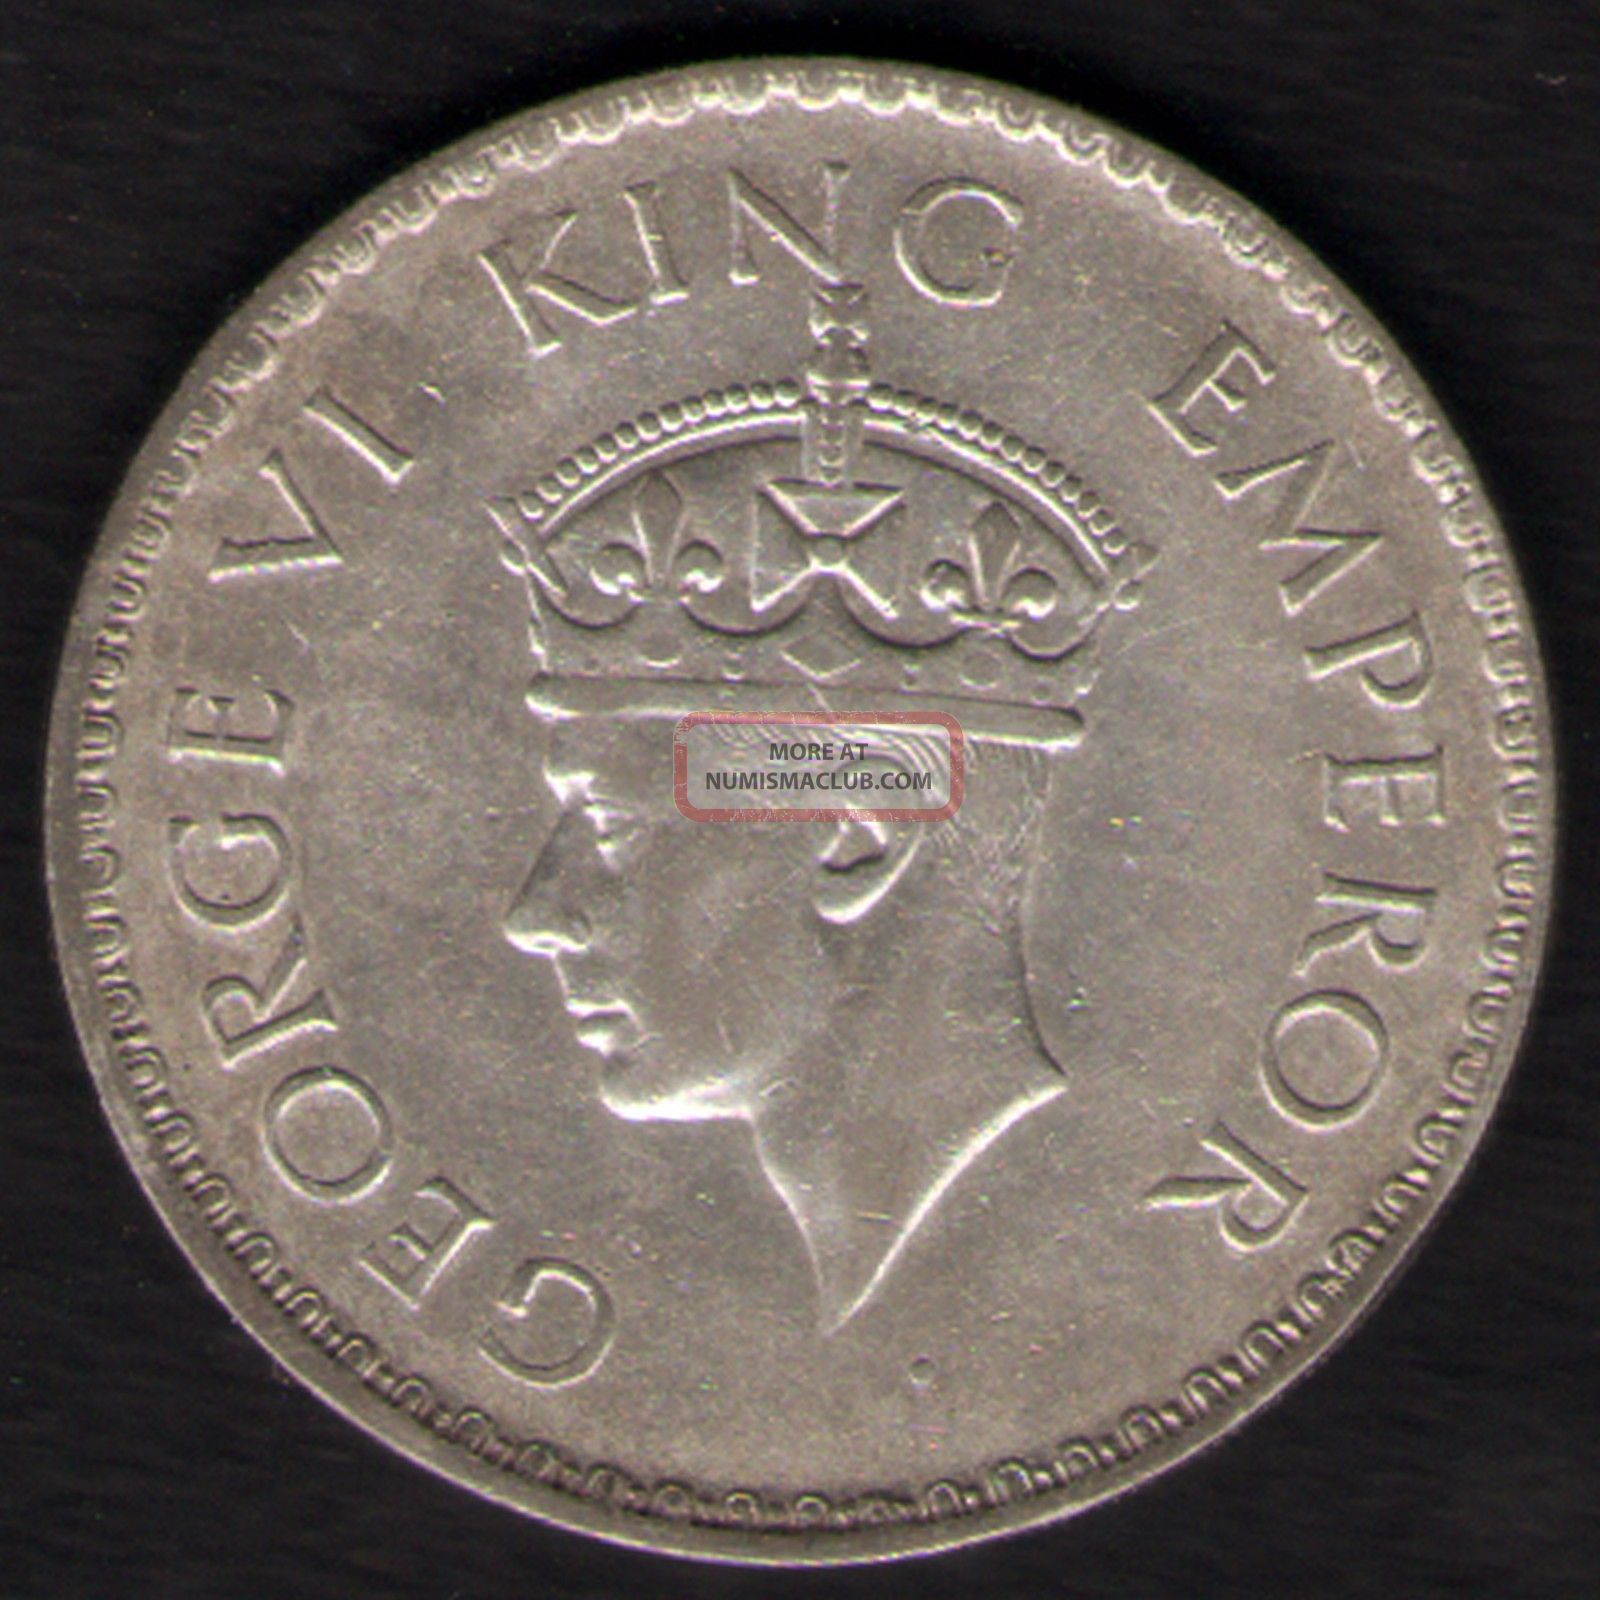 British India - 1940 - George Vi One Rupee Silver Coin Ex - Rare Coin British photo